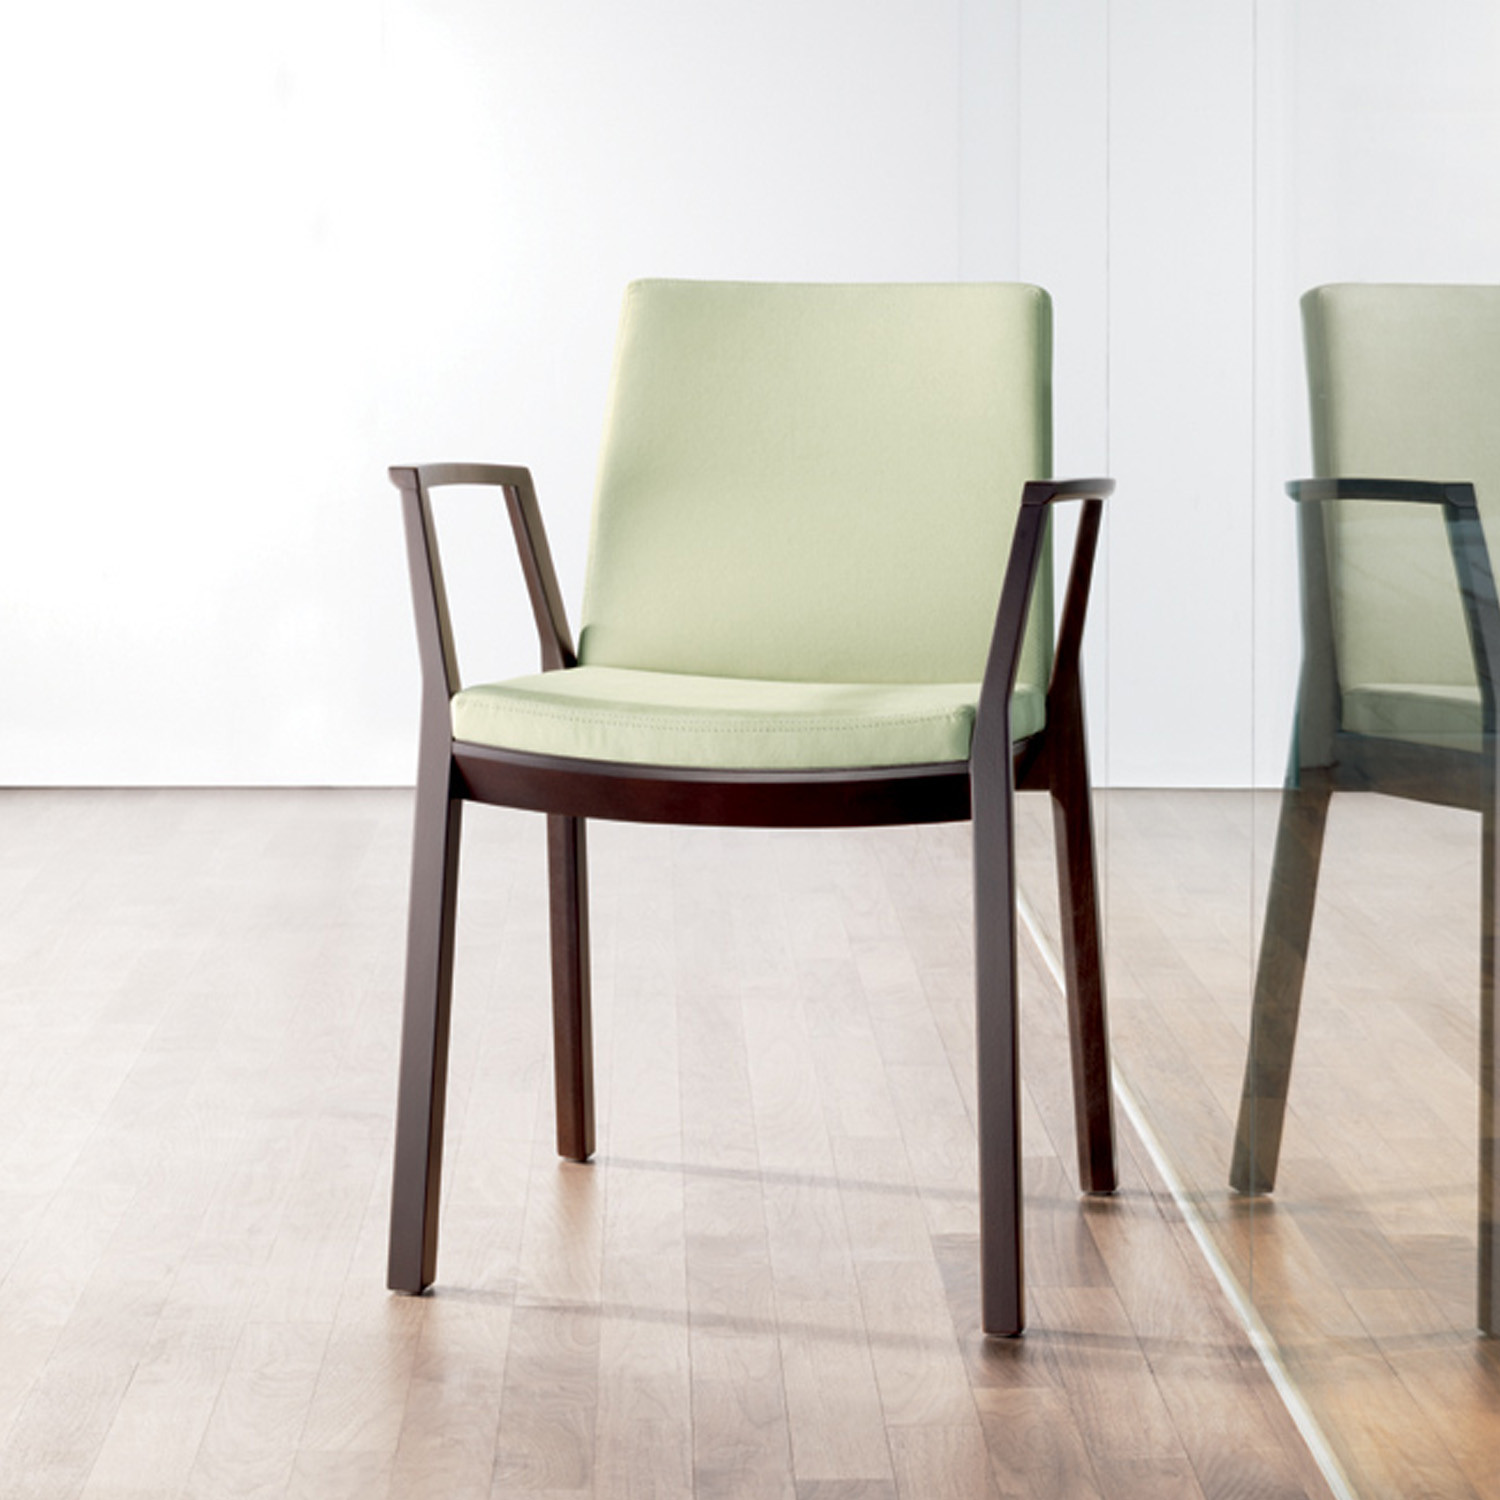 Arta Chair by Wiesner Hager